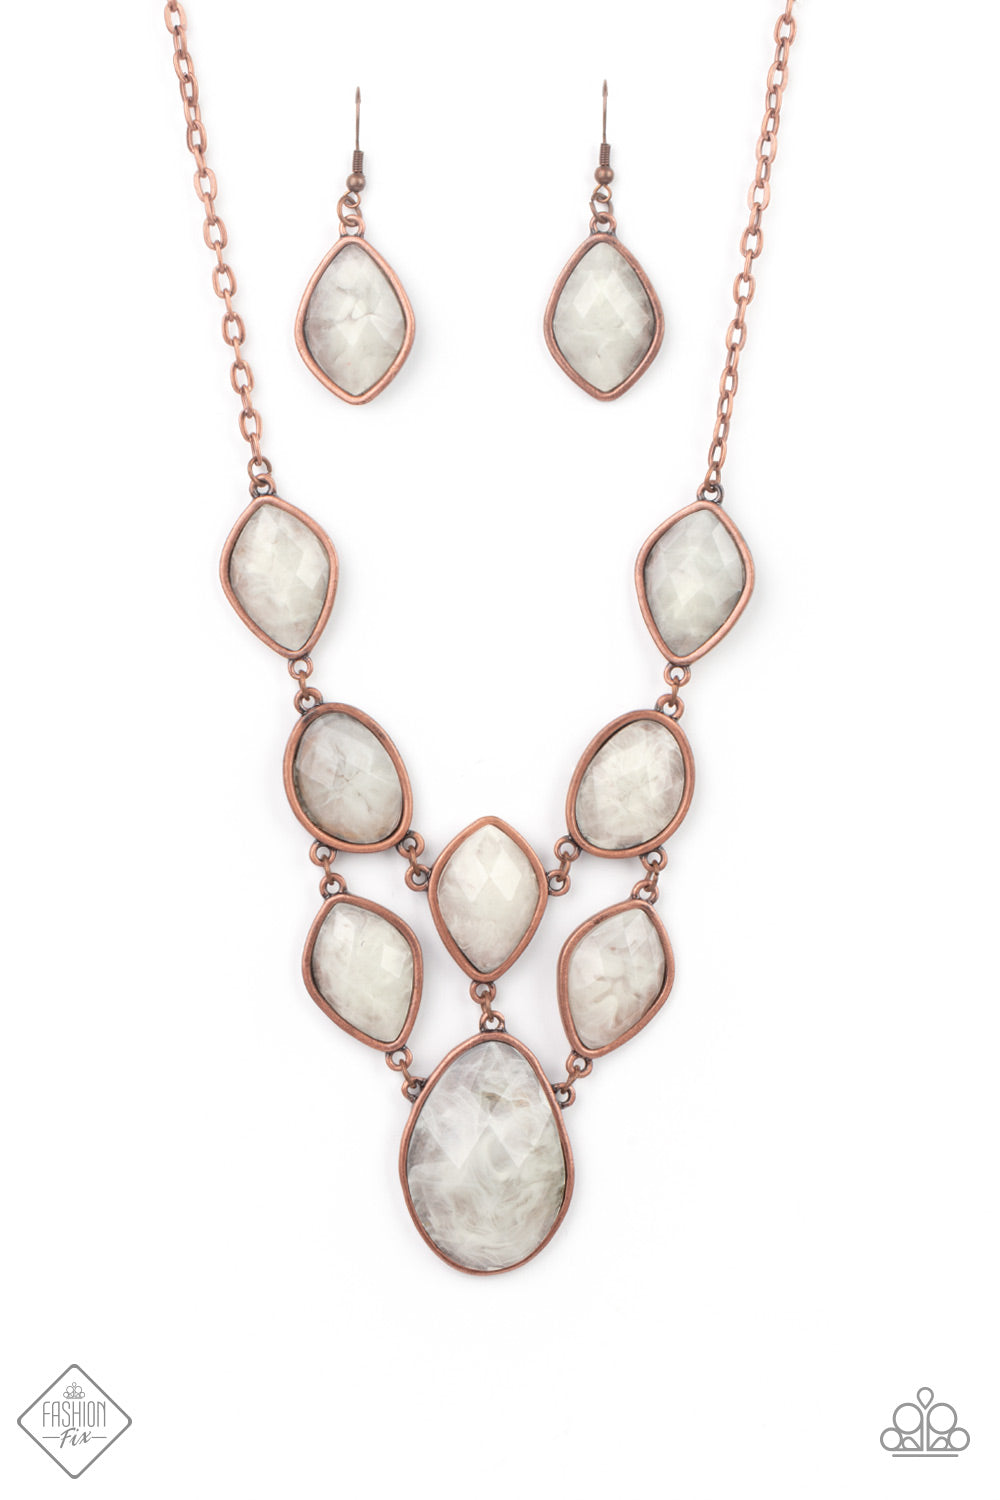 Paparazzi Accessories - Opulently Oracle - Copper Necklace